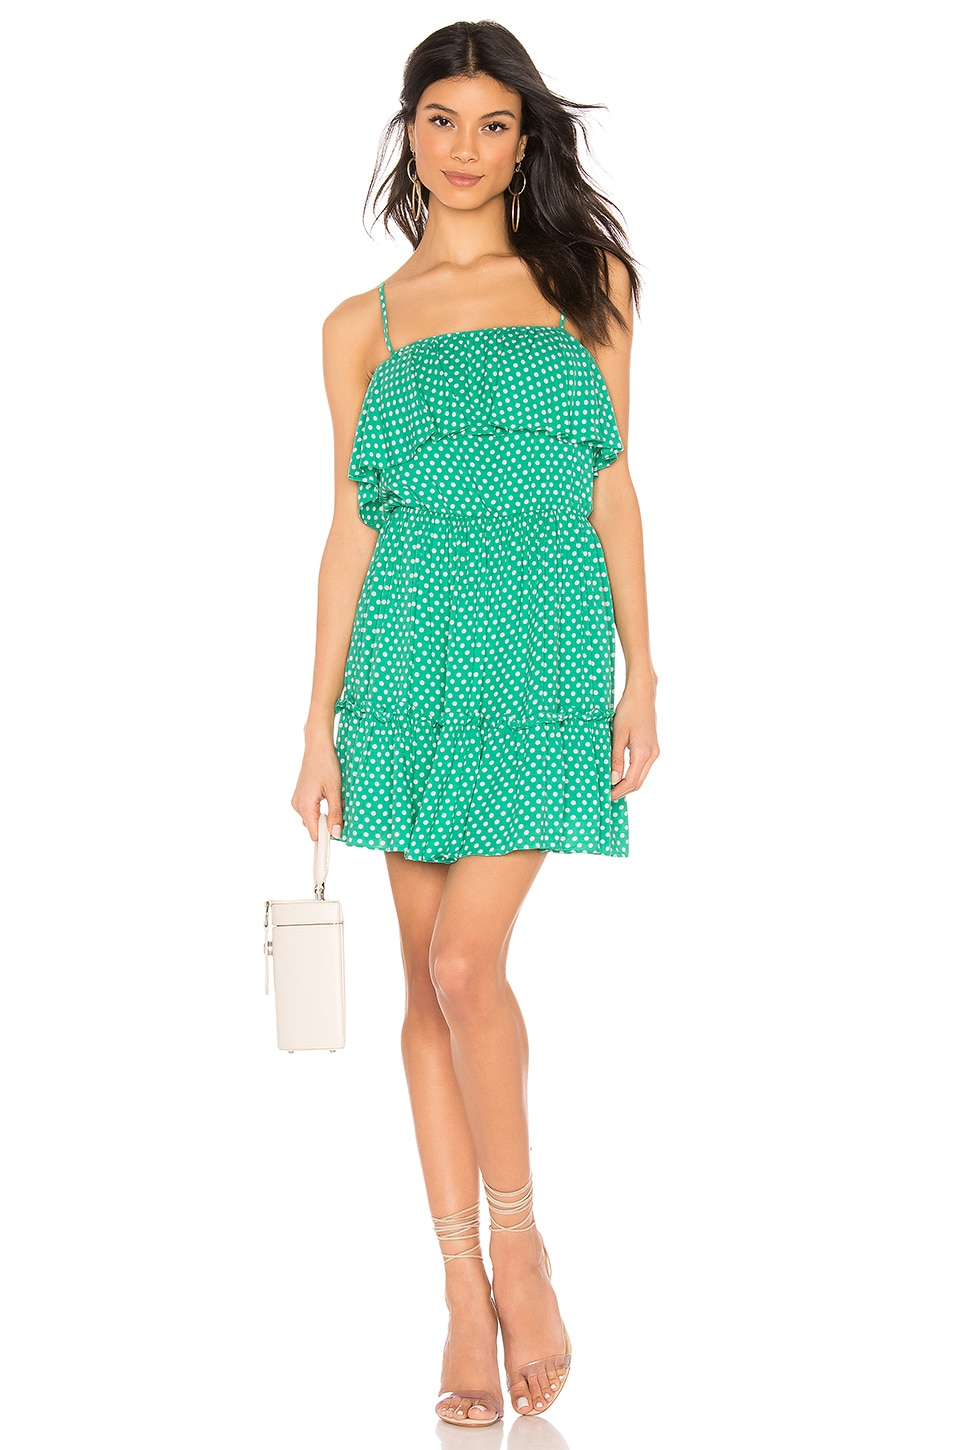 BB Dakota Dot Off The Press Dress in Kelly Green